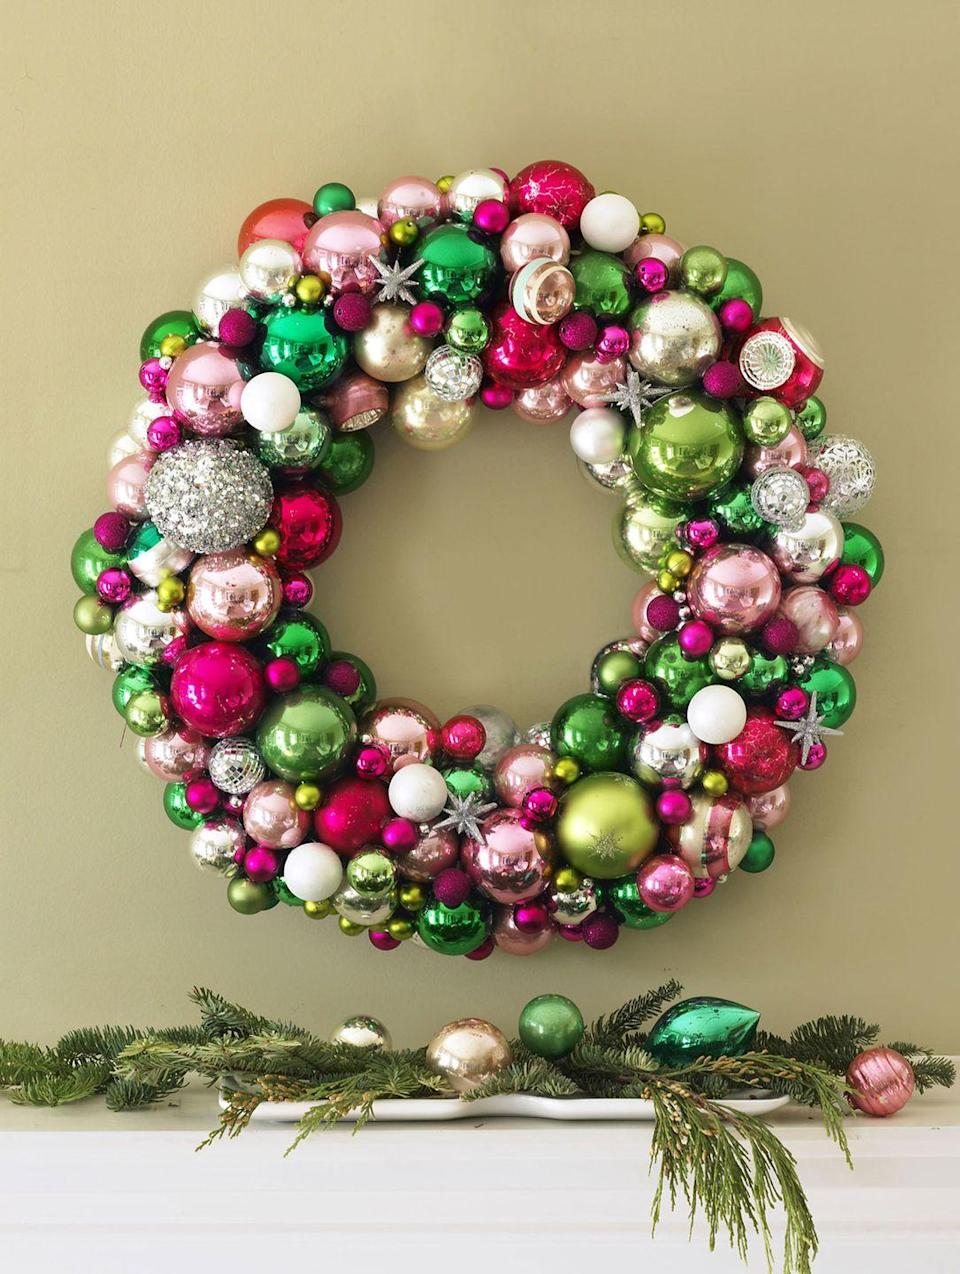 "<p>Skip traditional crimson to put a fresh spin on a <a href=""https://www.housebeautiful.com/entertaining/holidays-celebrations/g2787/christmas-wreaths/"" rel=""nofollow noopener"" target=""_blank"" data-ylk=""slk:Christmas wreath"" class=""link rapid-noclick-resp"">Christmas wreath</a>. Branch out with pink and green baubles, and add in a few silvery accents.</p><p>See more at <a href=""http://www.goodhousekeeping.com/holidays/christmas-ideas/g1943/christmas-wreath-projects/"" rel=""nofollow noopener"" target=""_blank"" data-ylk=""slk:Good Housekeeping"" class=""link rapid-noclick-resp"">Good Housekeeping</a>. </p>"